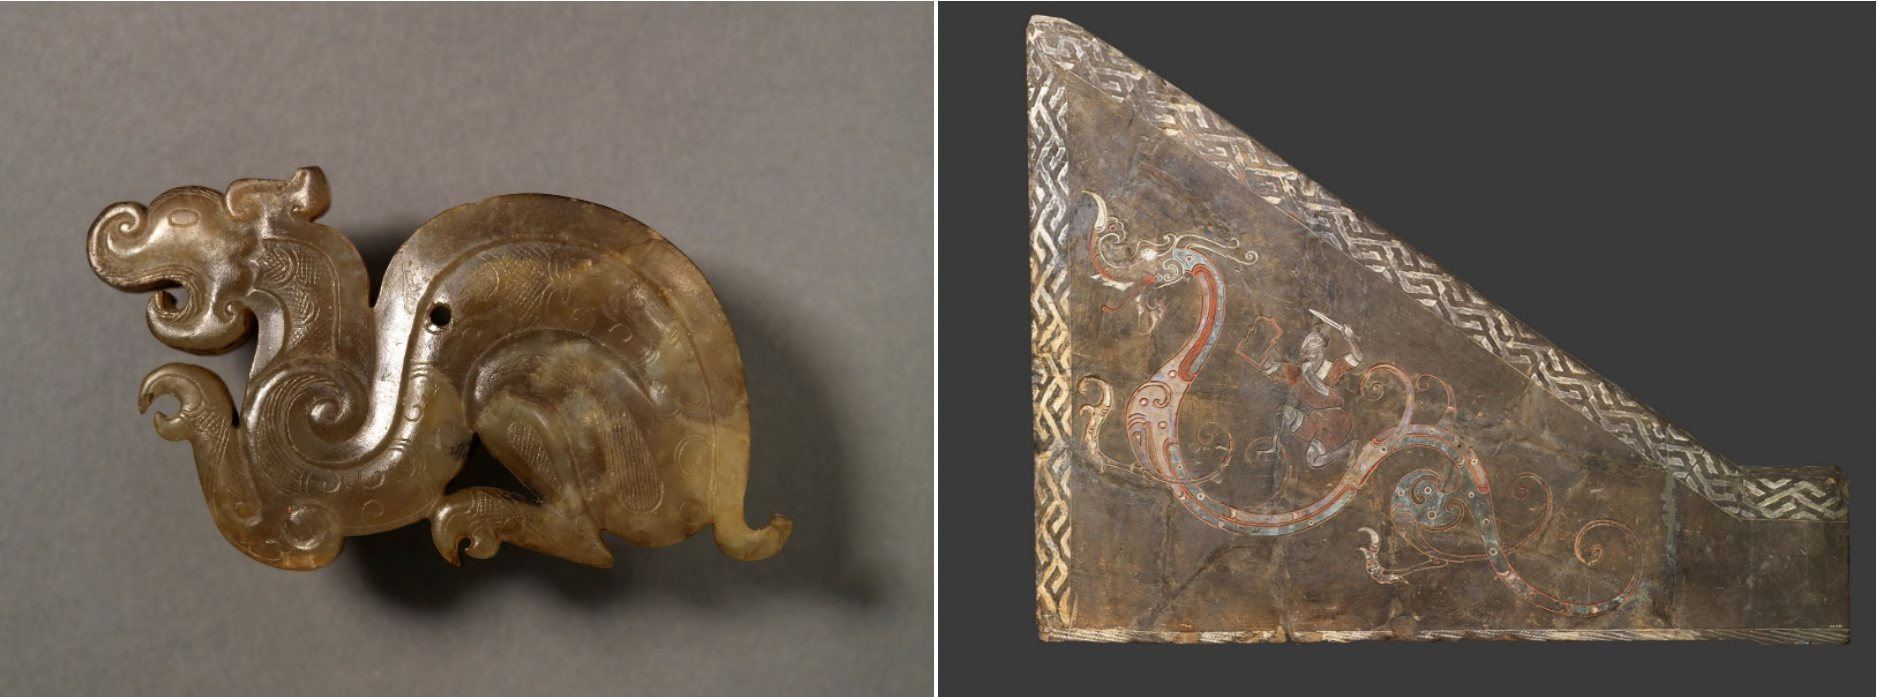 composite of two images. a dragon pendant on the left and an image of a dragon and warrior on the right